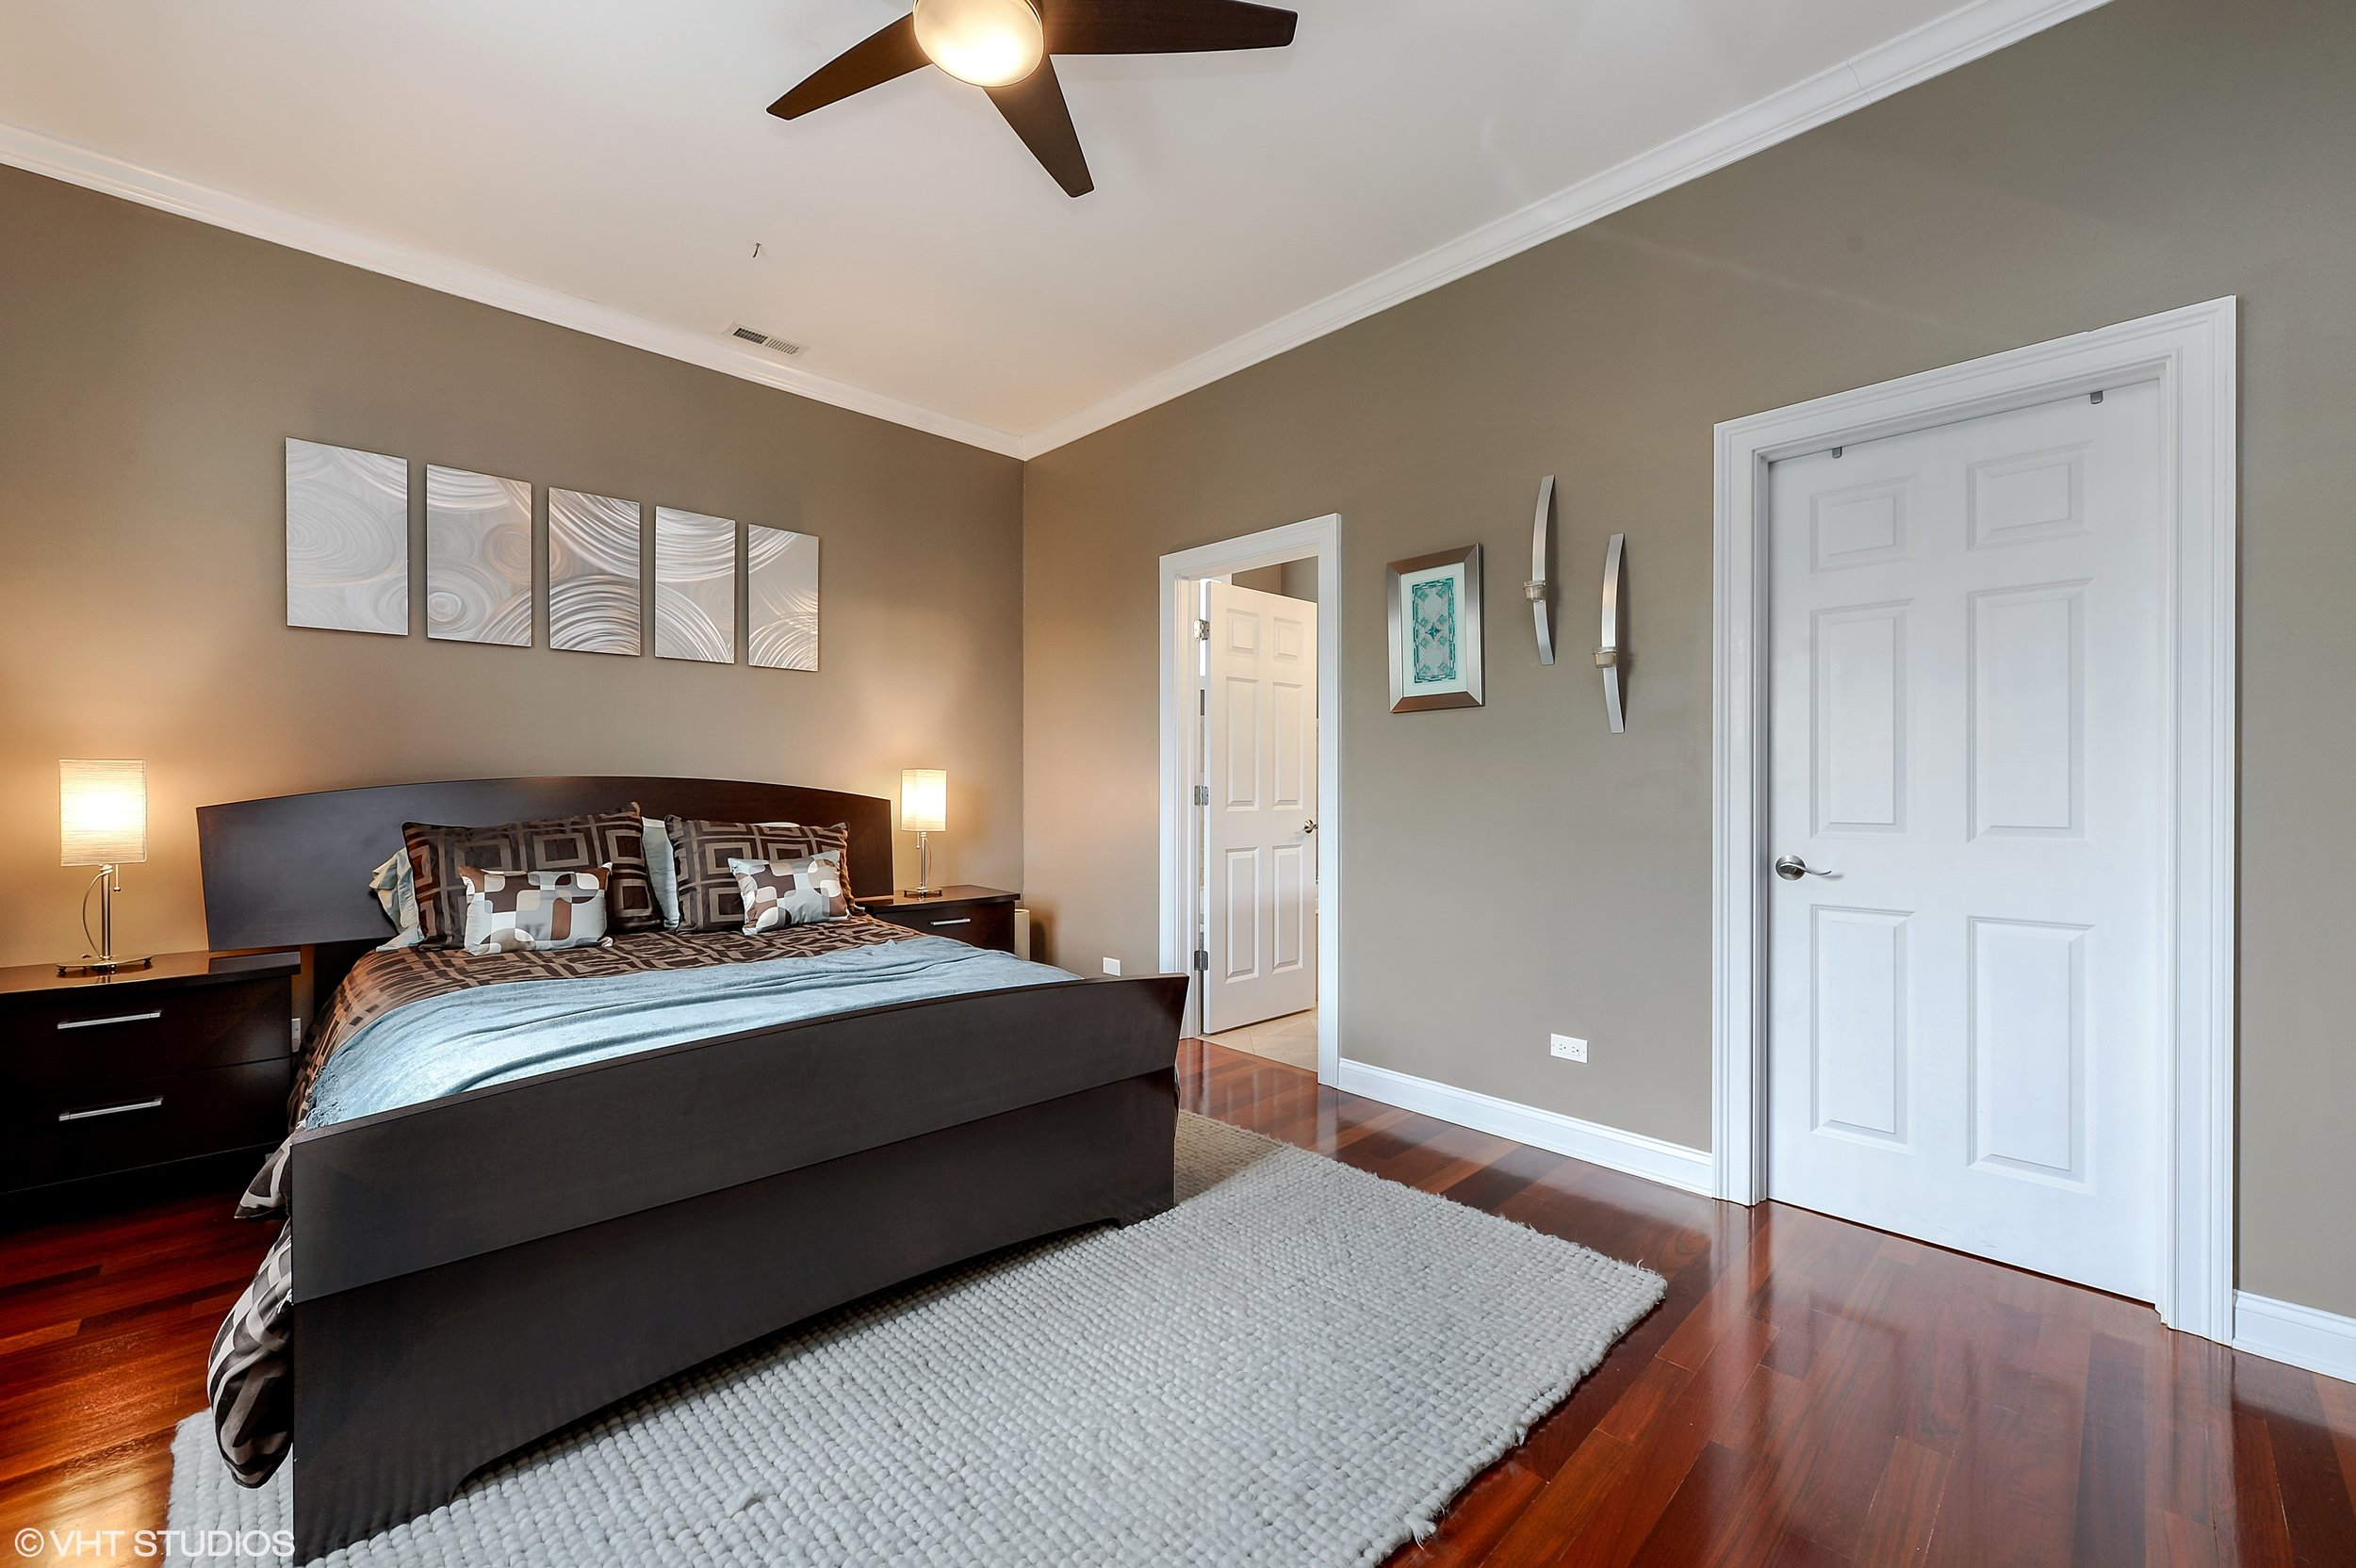 08_2641NorthAshlandAve_3S_178_MasterBedroom_HiRes.jpg